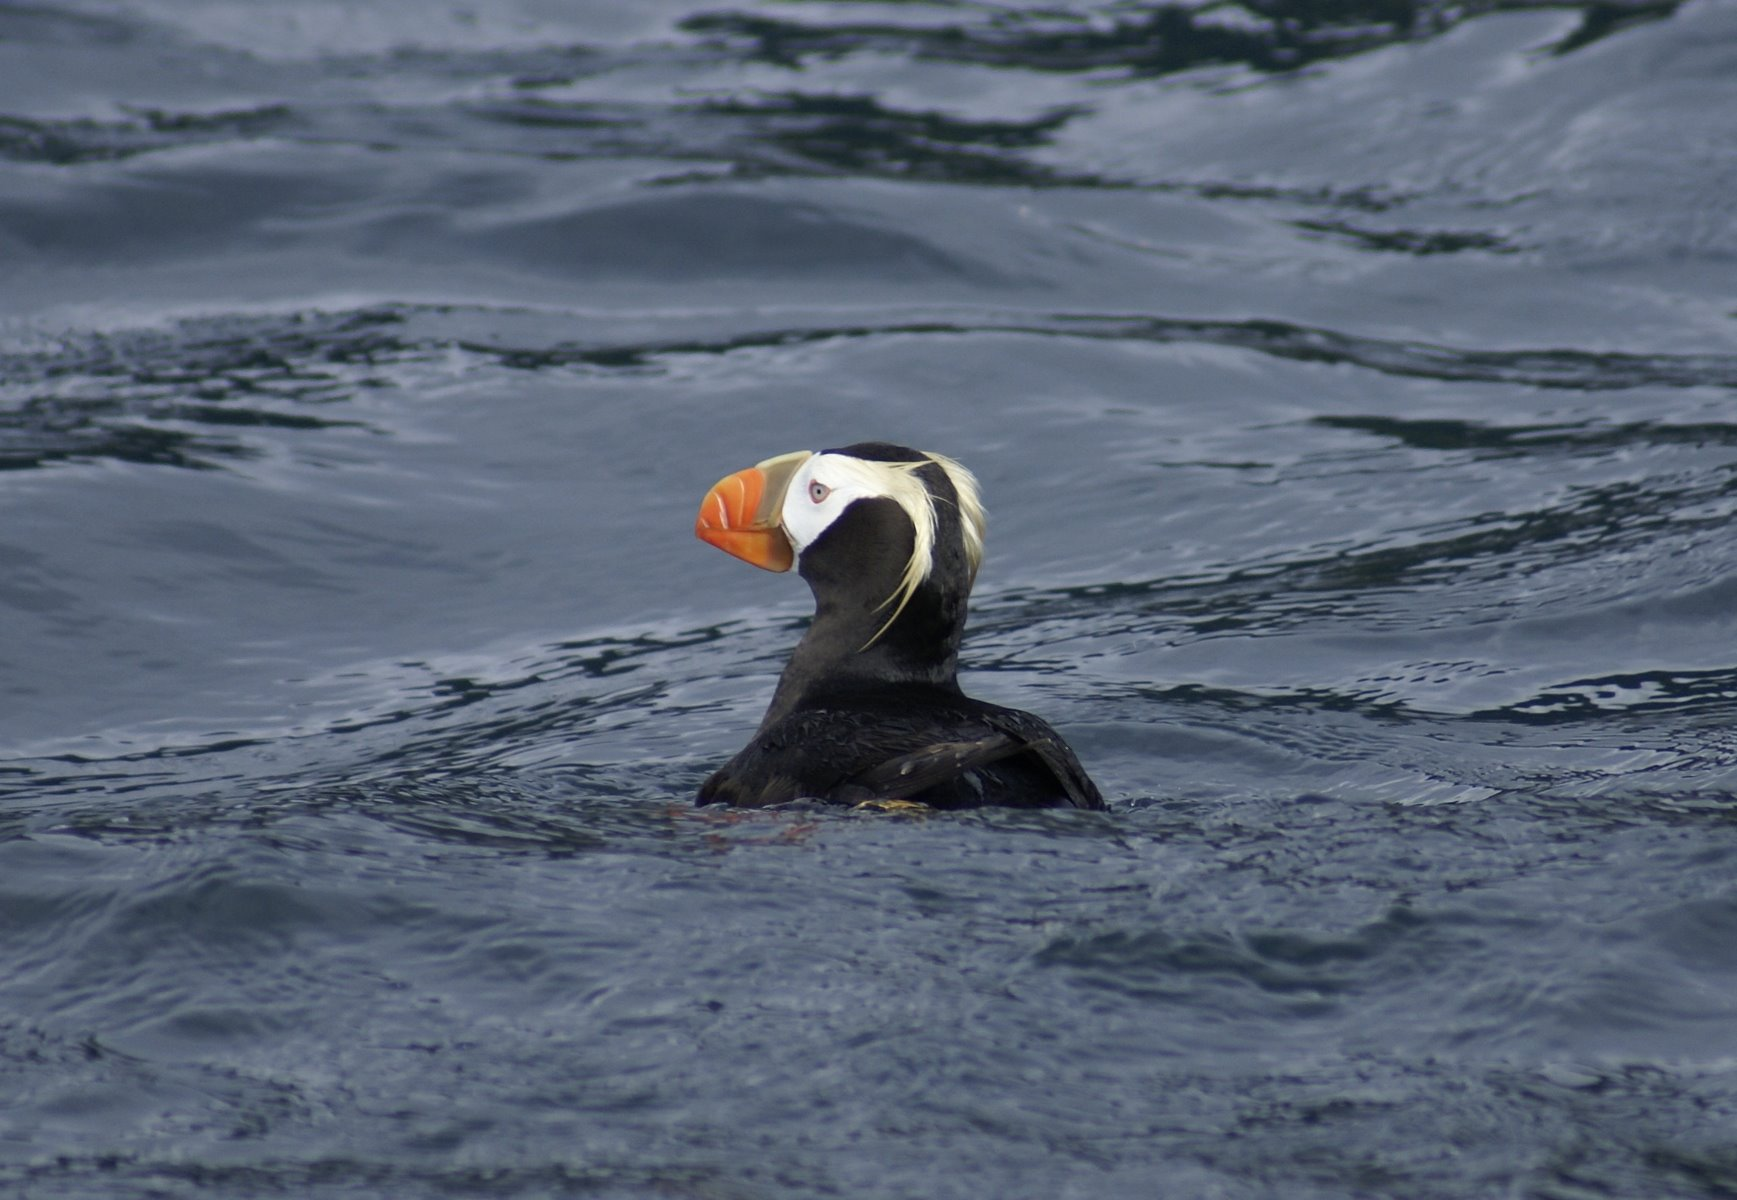 Puffins, once common are now quite rare.